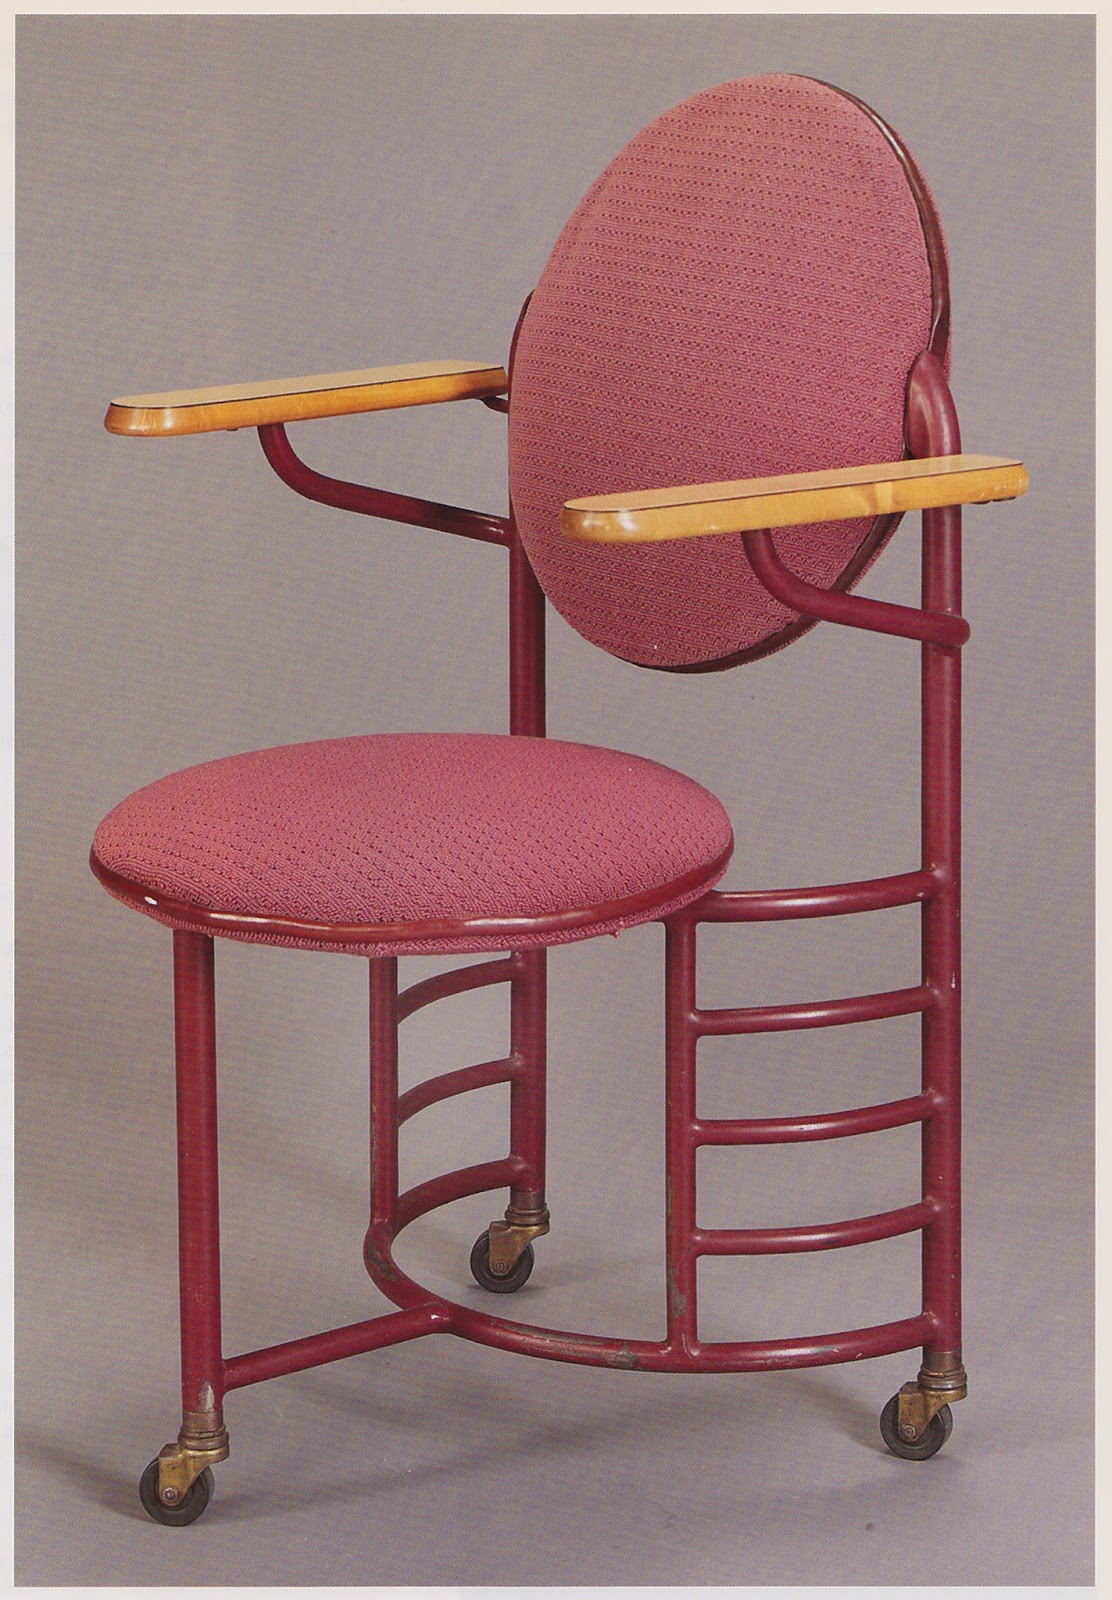 Frank lloyd wright  desk chair  1936 37